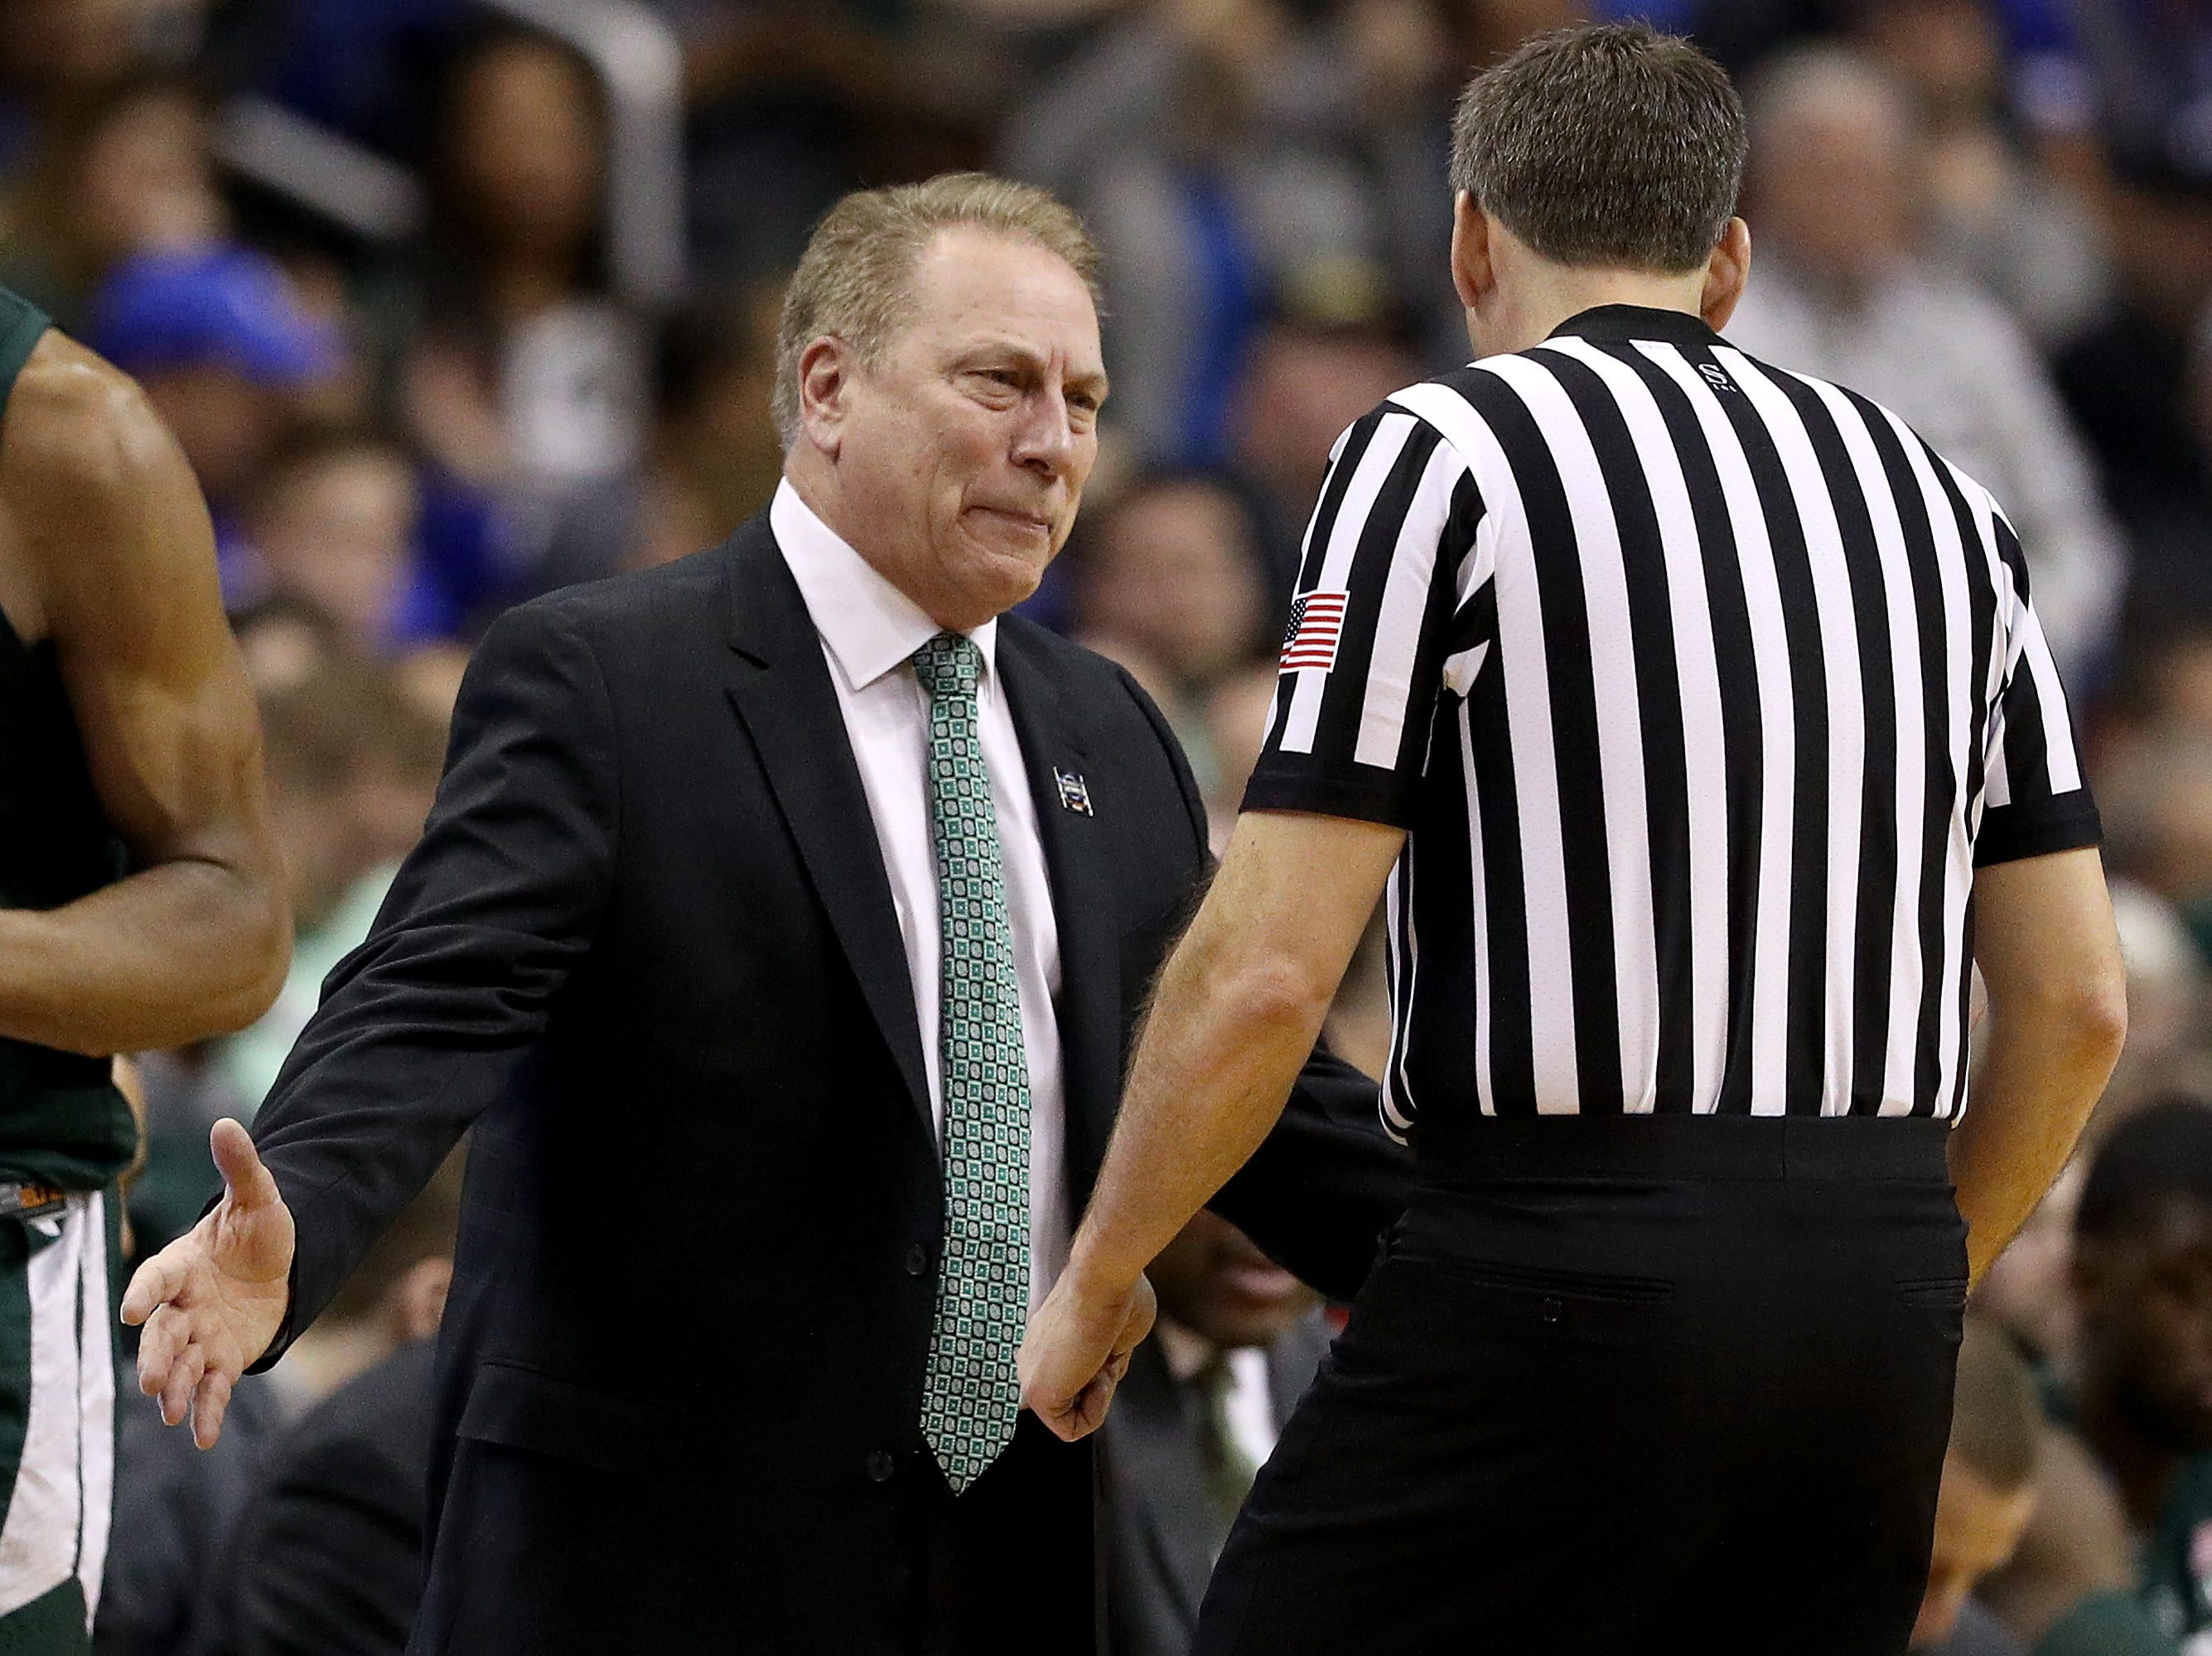 Head coach Tom Izzo of the Michigan State Spartans questions the call by the referee against the Duke Blue Devils during the first half in the East Regional game of the 2019 NCAA Men's Basketball Tournament at Capital One Arena on March 31, 2019 in Washington, DC.